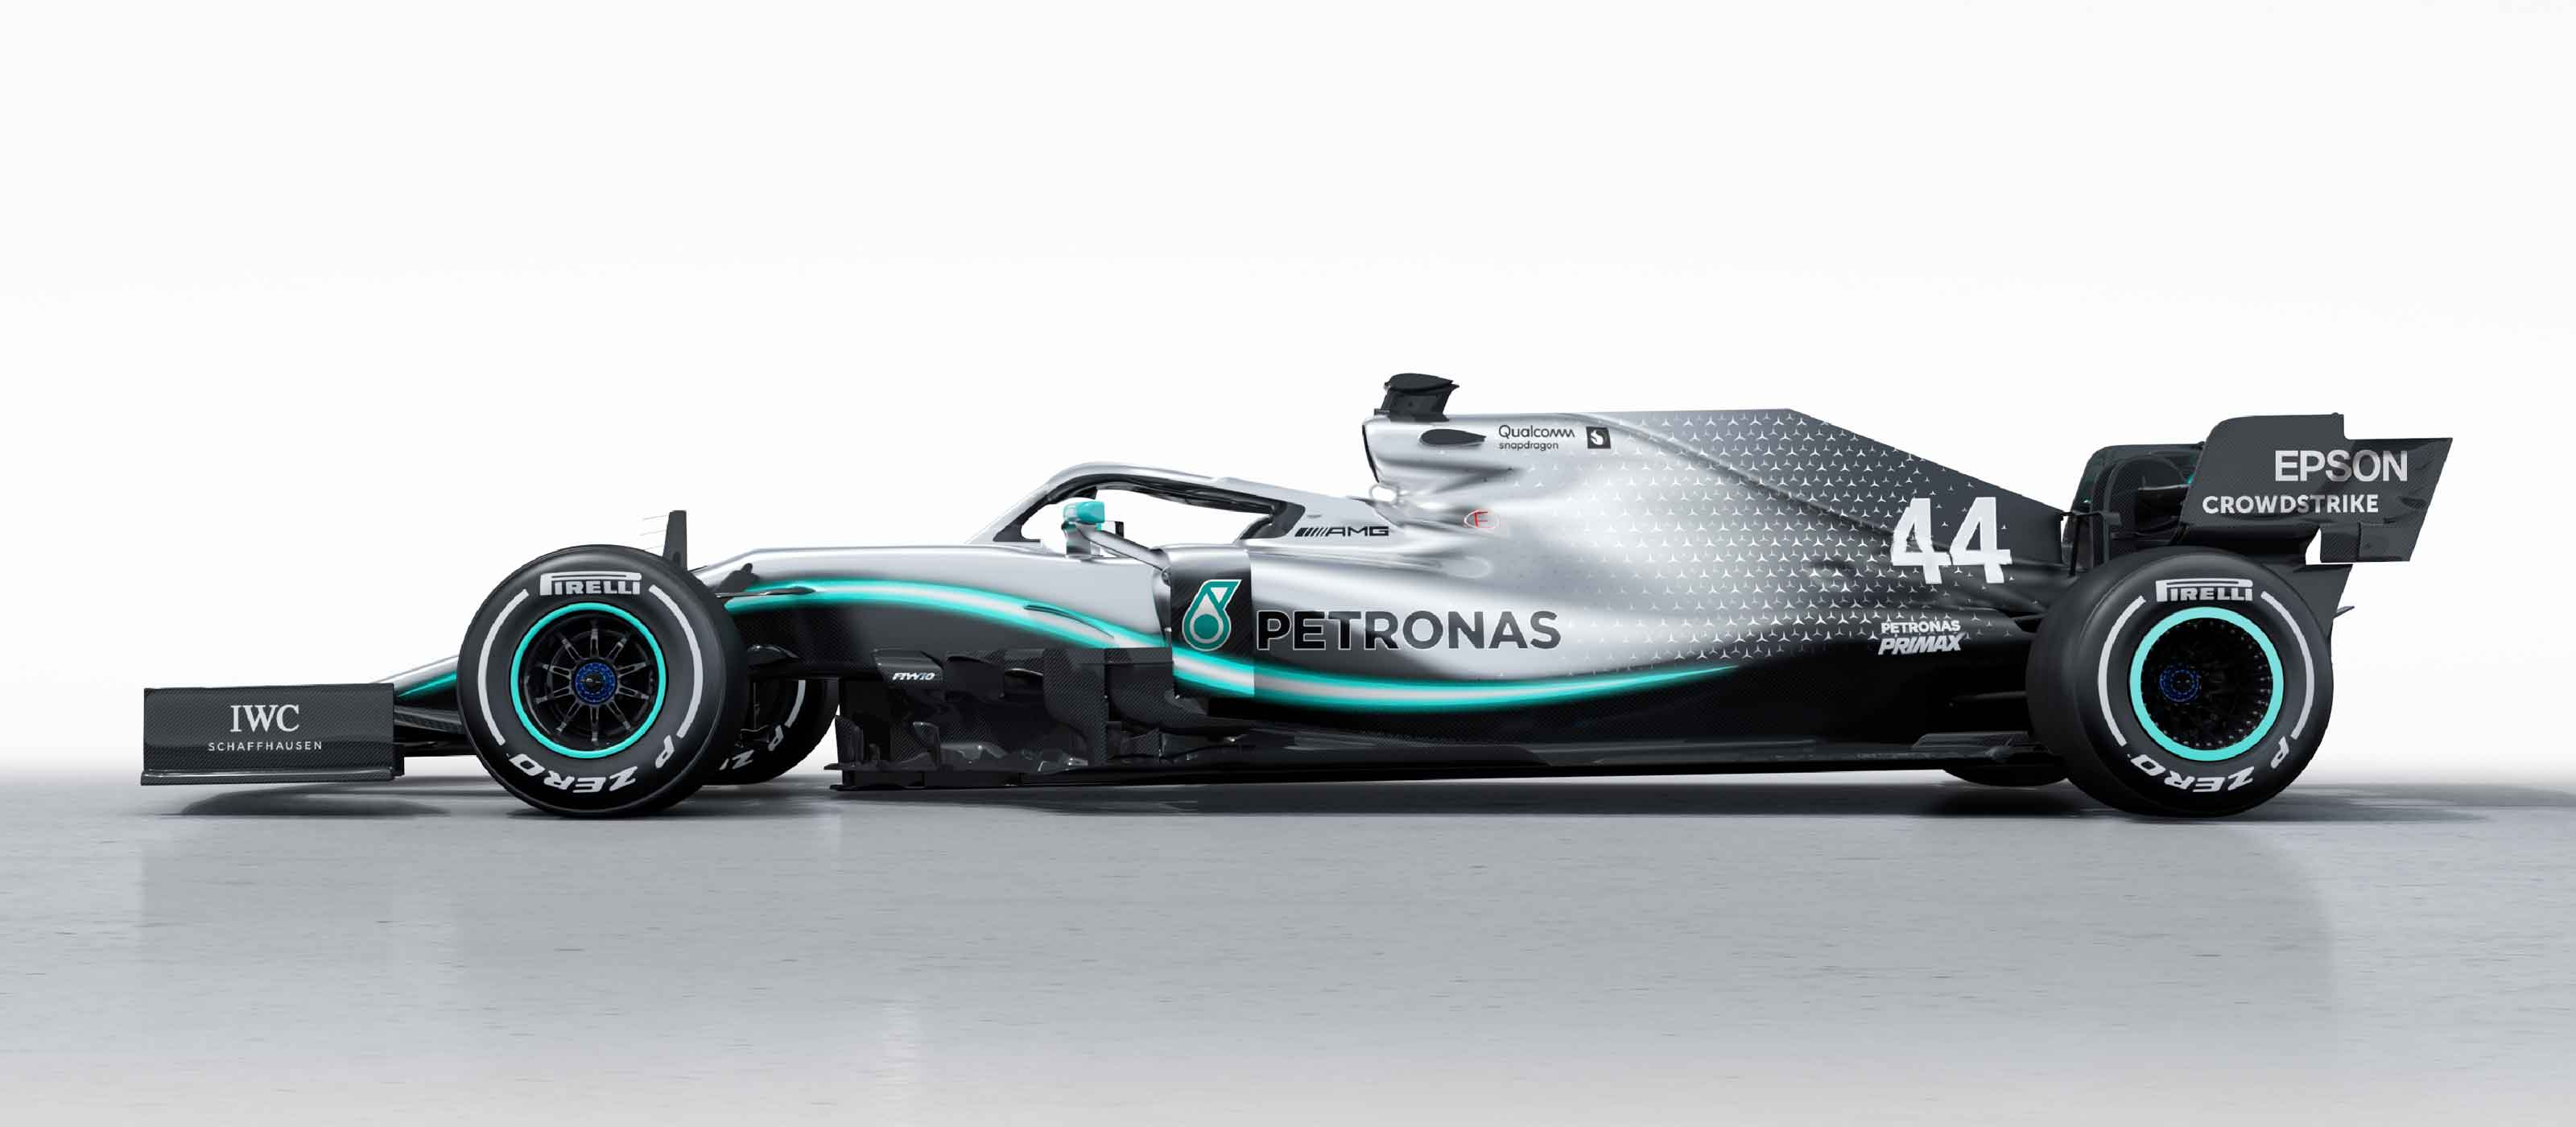 92 All New F1 Mercedes 2019 Release Date And Specs Spy Shoot by F1 Mercedes 2019 Release Date And Specs